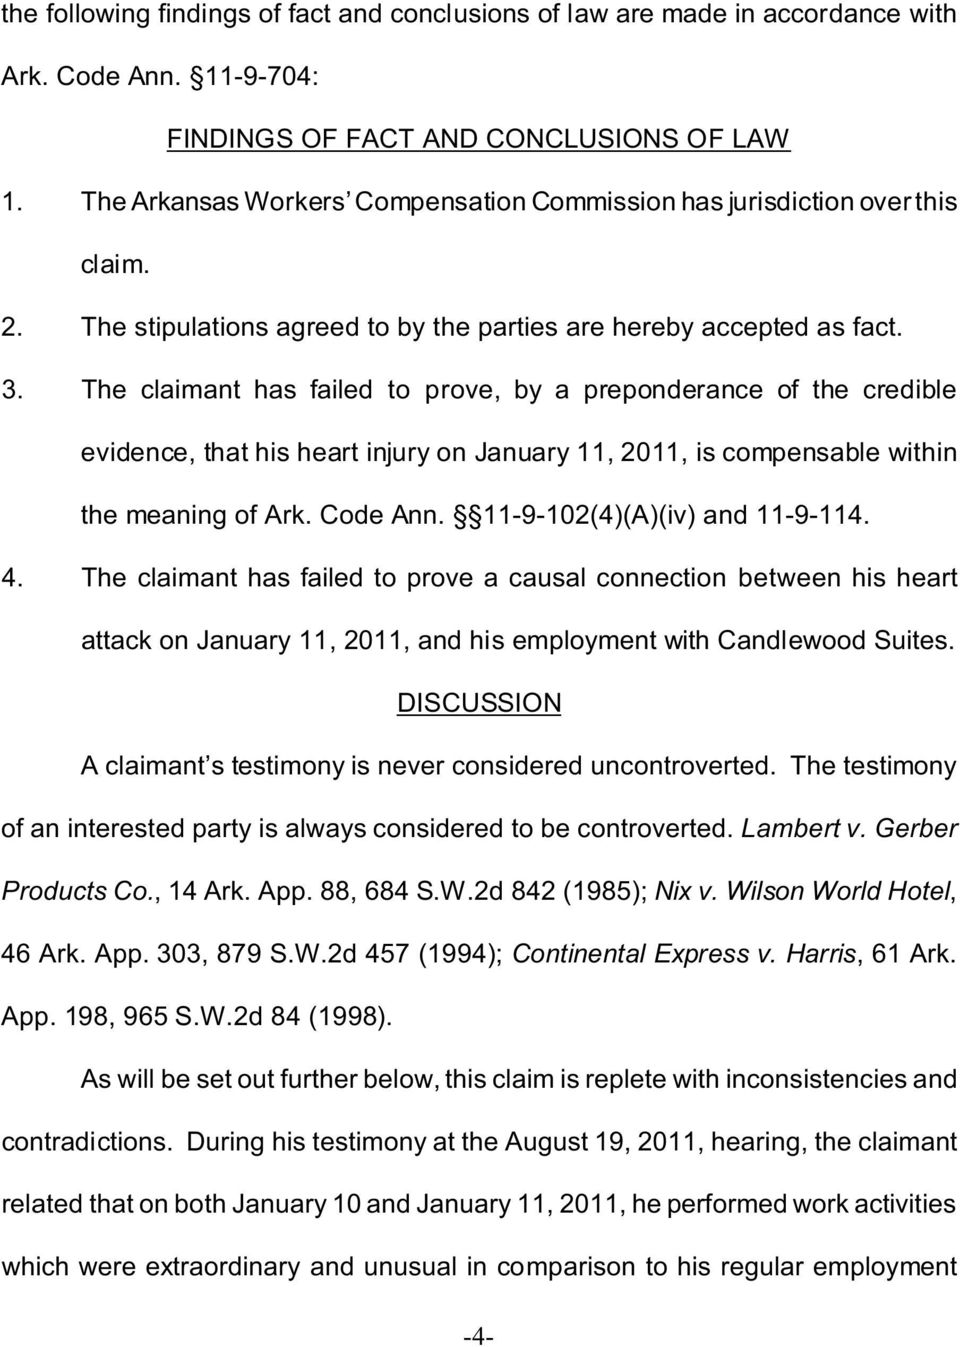 The claimant has failed to prove, by a preponderance of the credible evidence, that his heart injury on January 11, 2011, is compensable within the meaning of Ark. Code Ann.